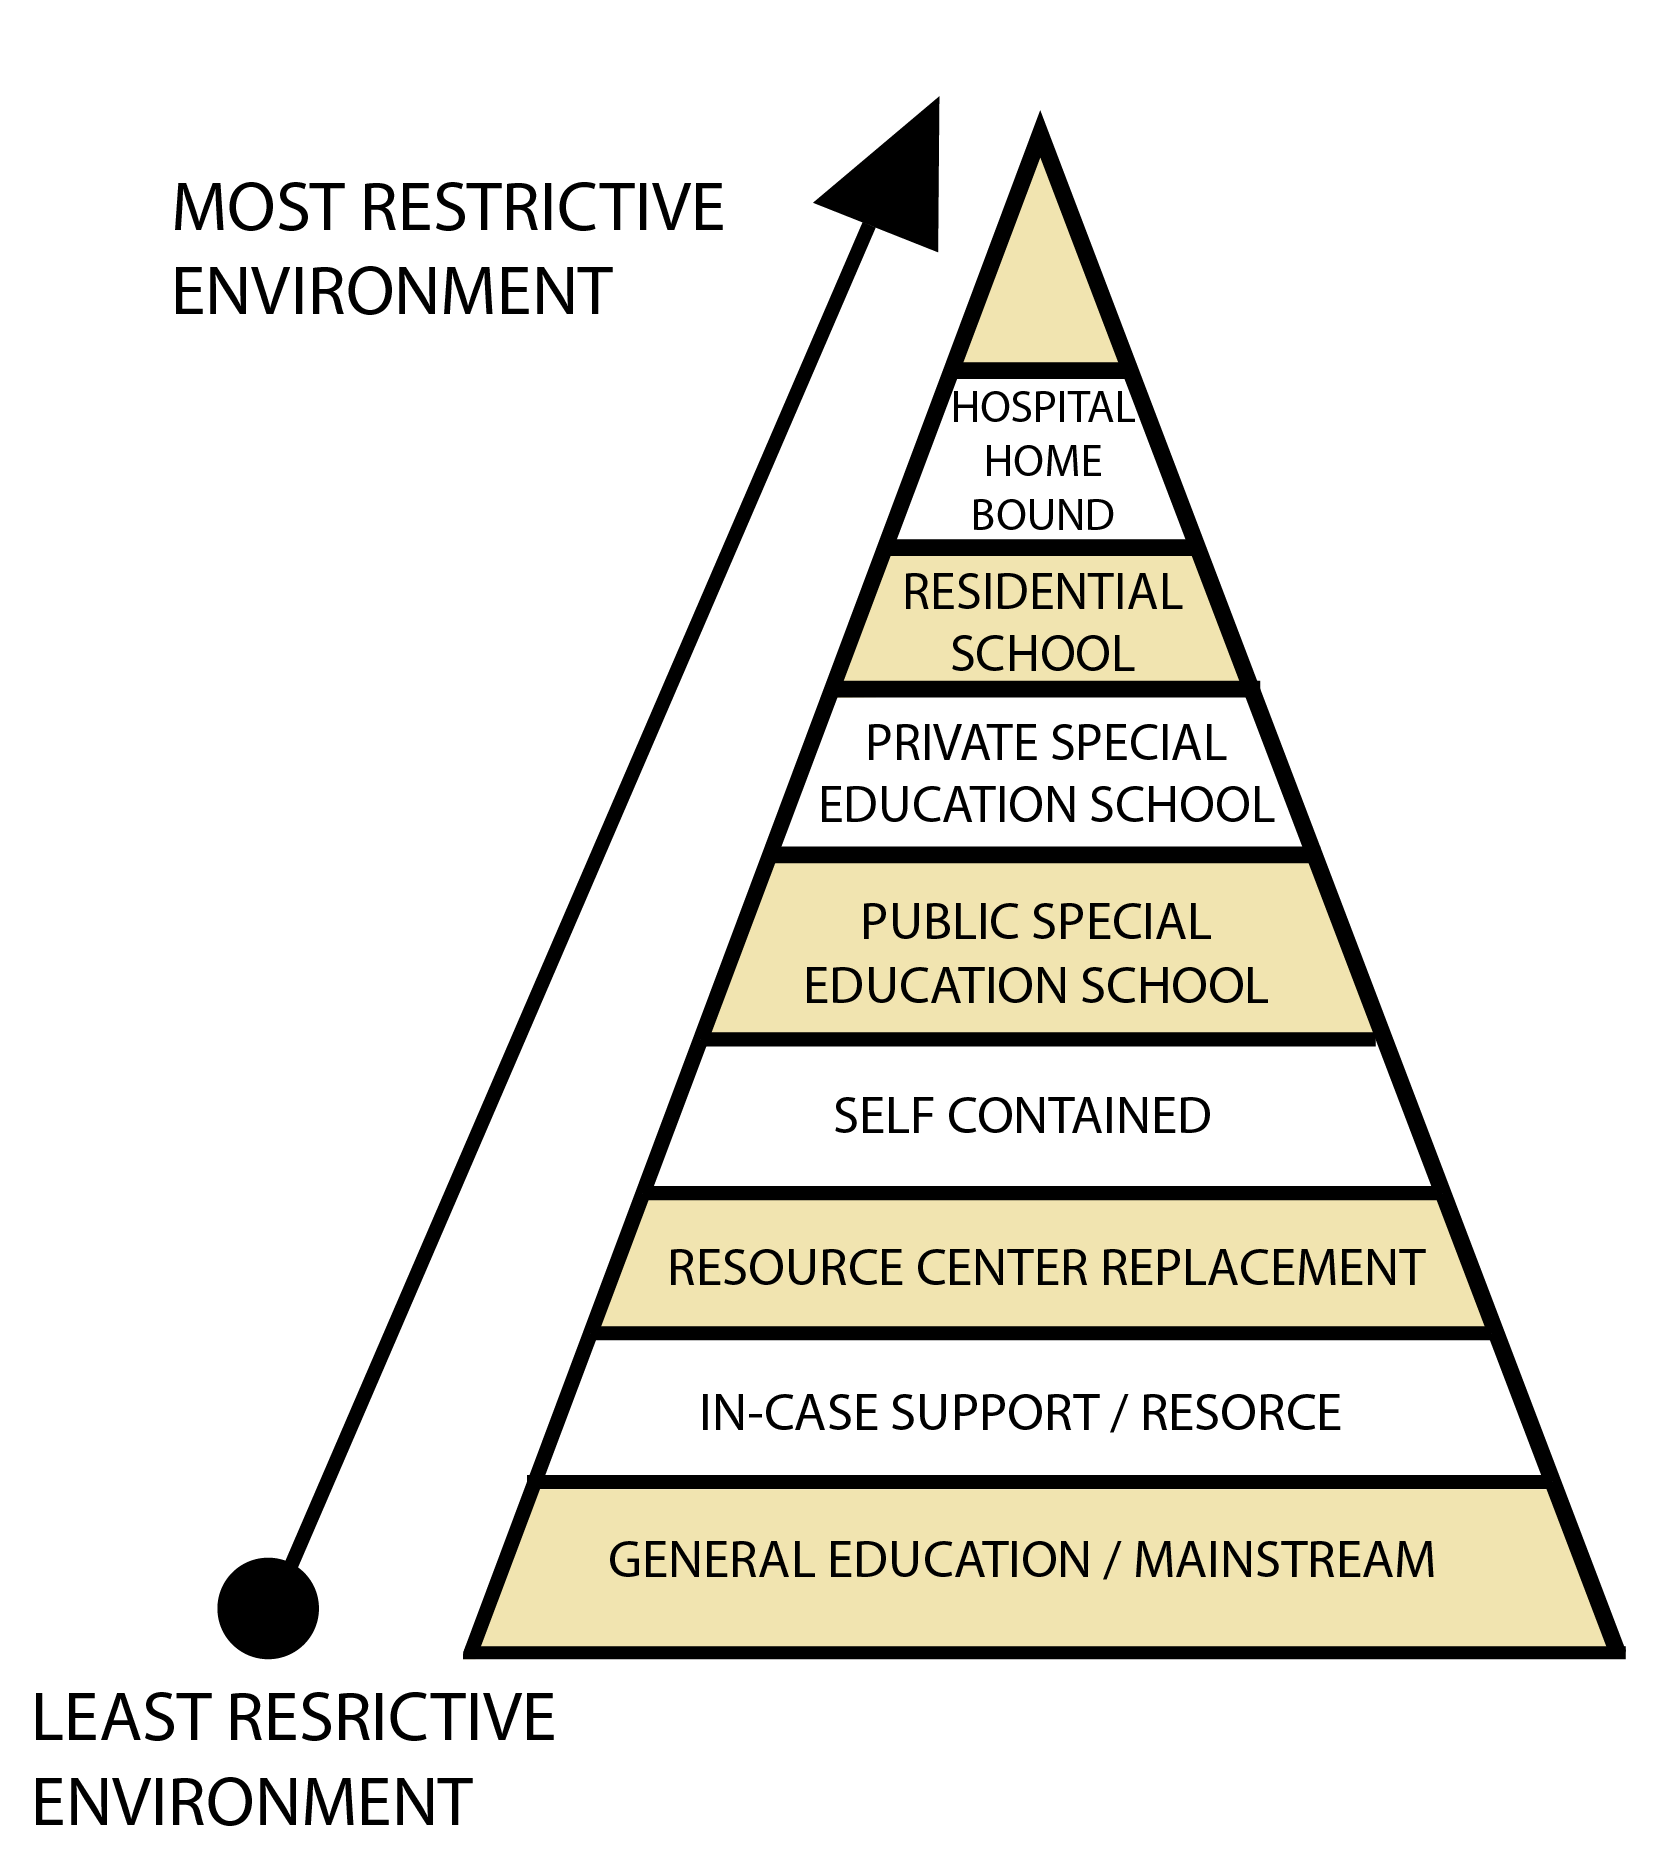 free and appropriate education in the least restrictive environment